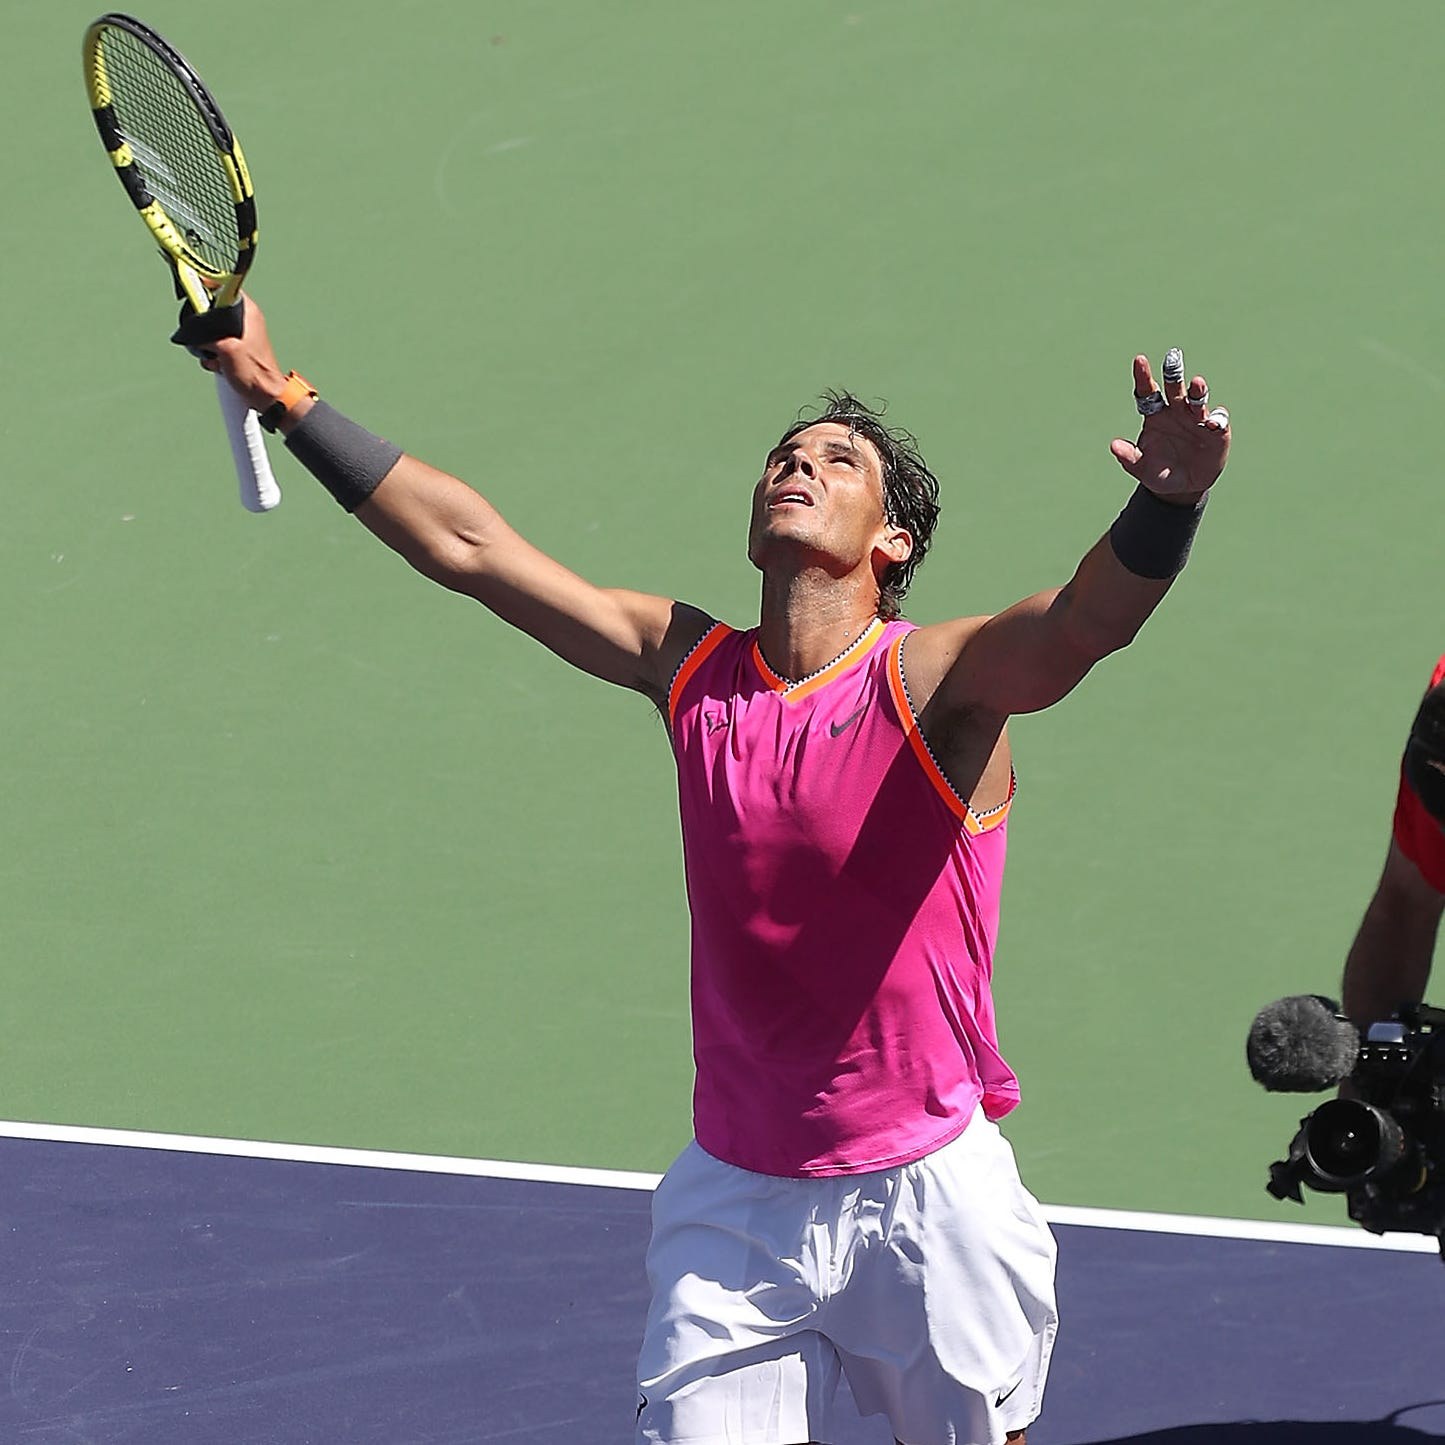 Rafael Nadal fights off injury to win, set up meeting against Roger Federer in Indian Wells semifinal